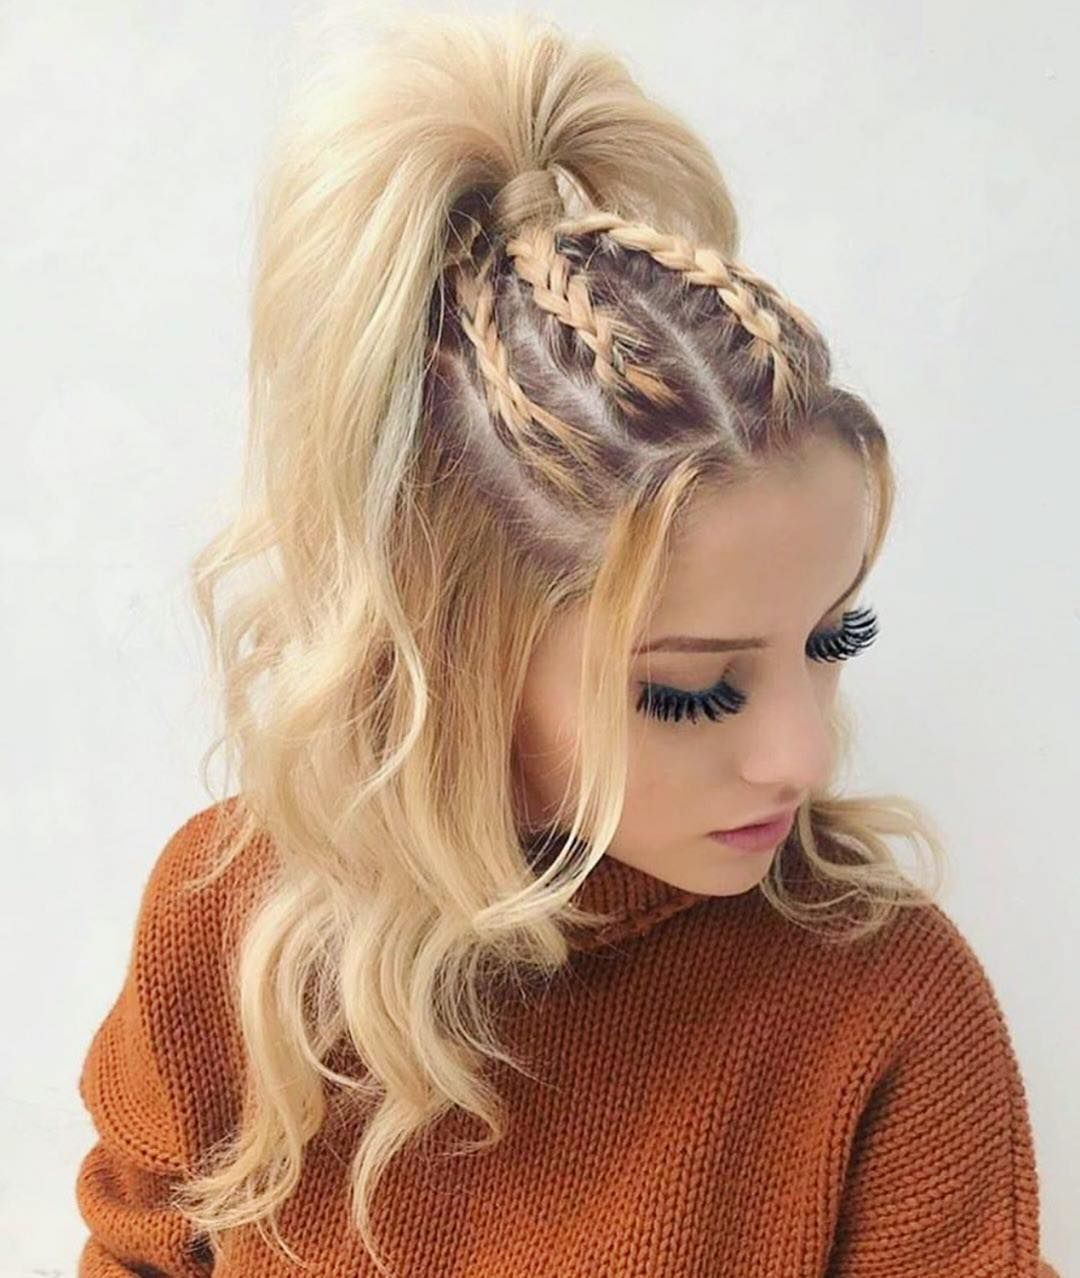 1 2 3 4 5 6 7 8 9 Or 10 Which One Is Your Favorite Hairstyle Follow Us Hairtutor Braids For Long Hair Braided Hairstyles Hair Styles